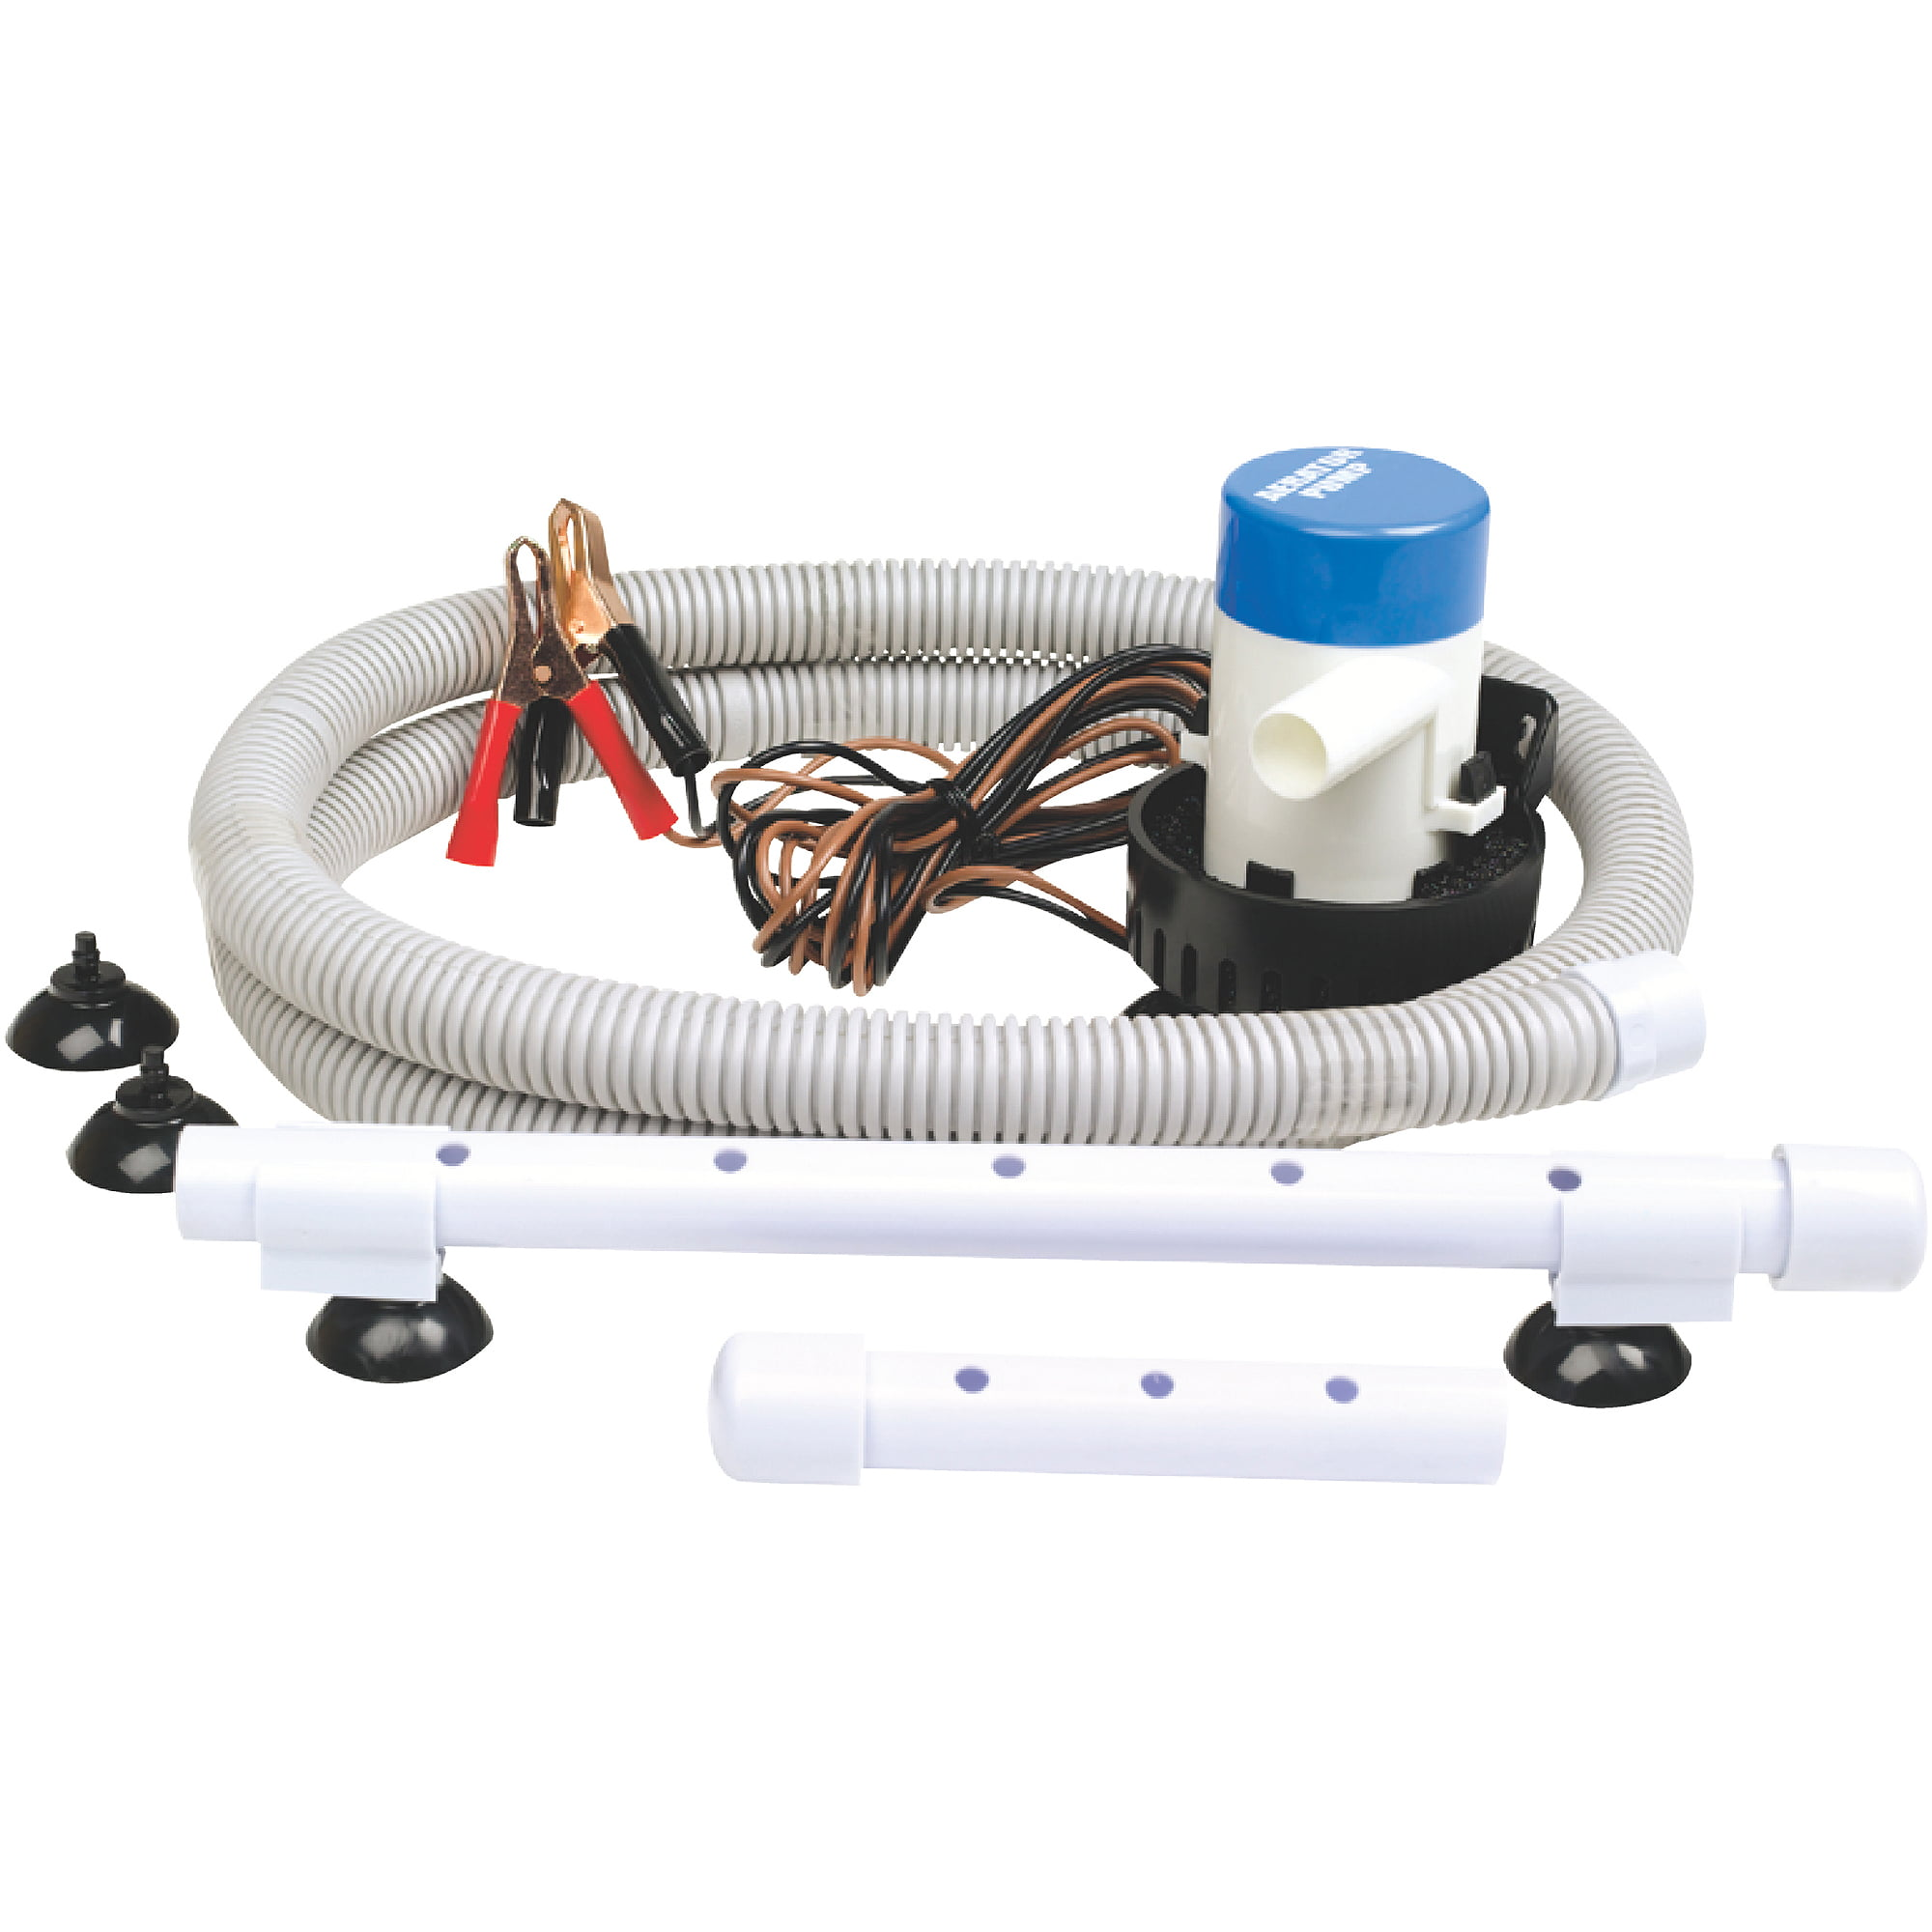 "Seachoice 12V Aeration Pump System 360 GPH with 3 4"" Outlet by Seachoice Products"